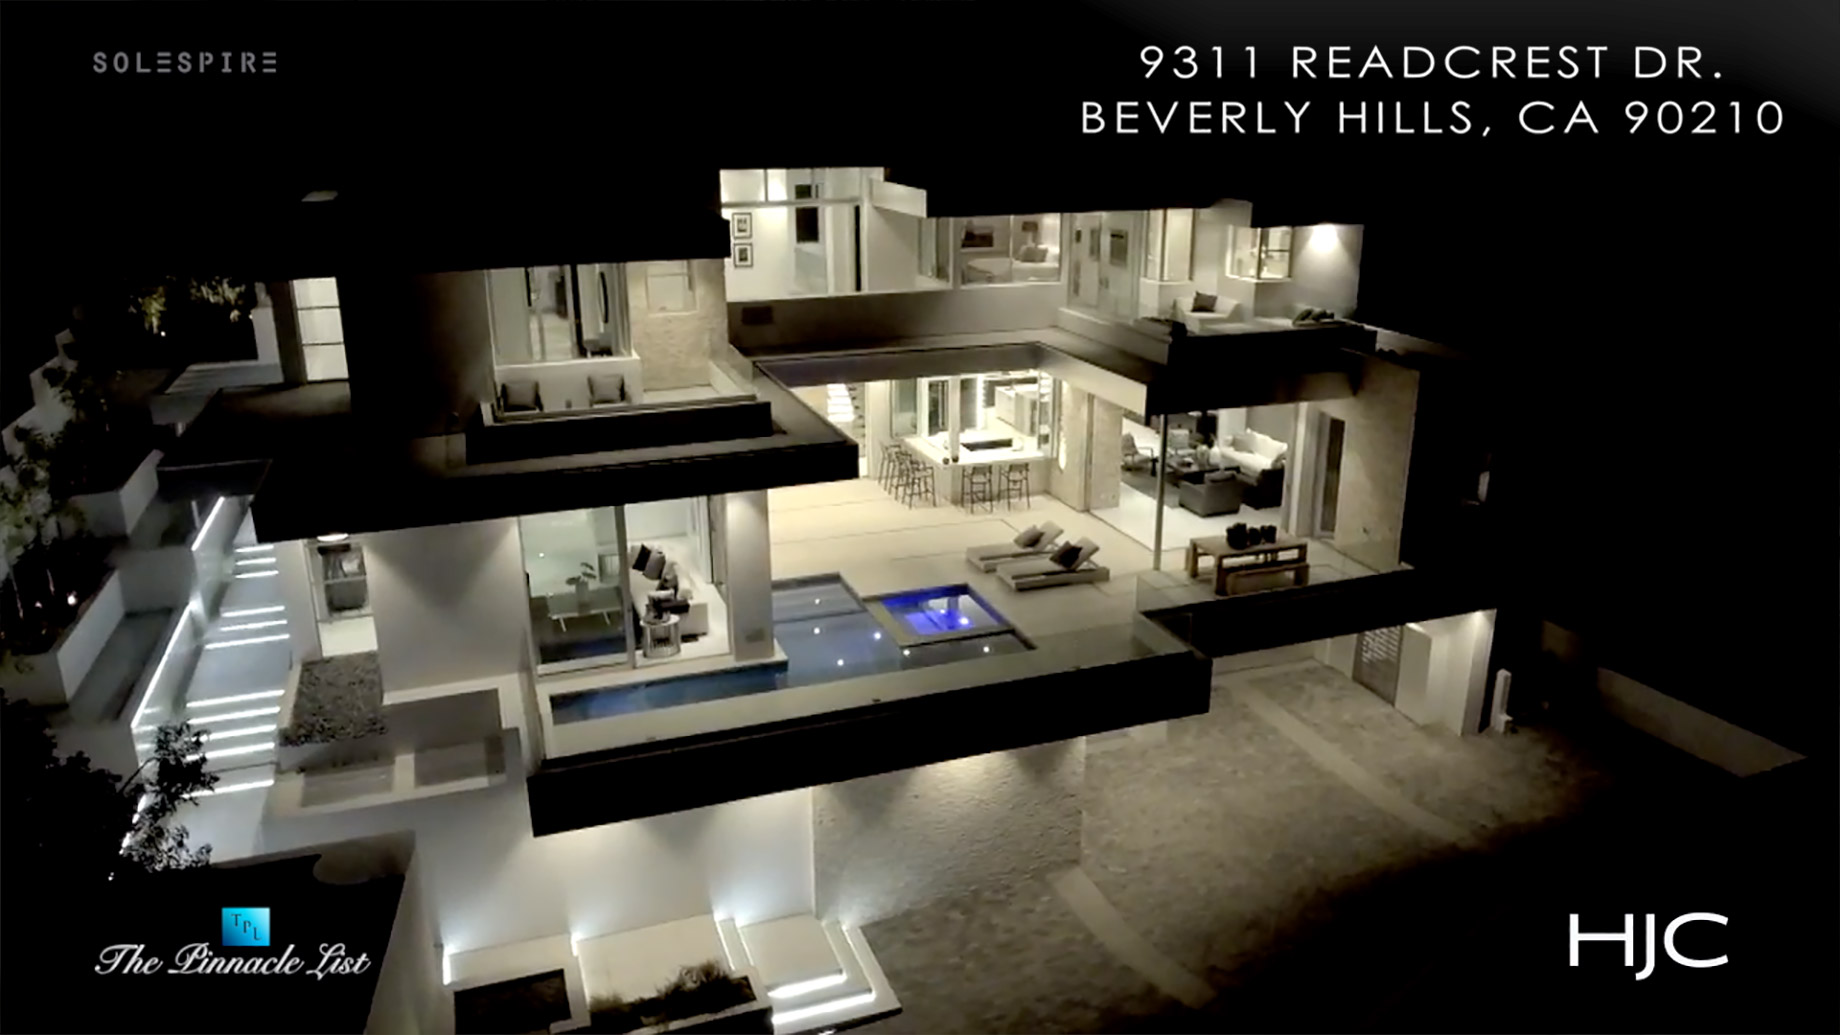 Modern Contemporary Home - 9311 Readcrest Dr, Beverly Hills, CA, USA - Luxury Real Estate